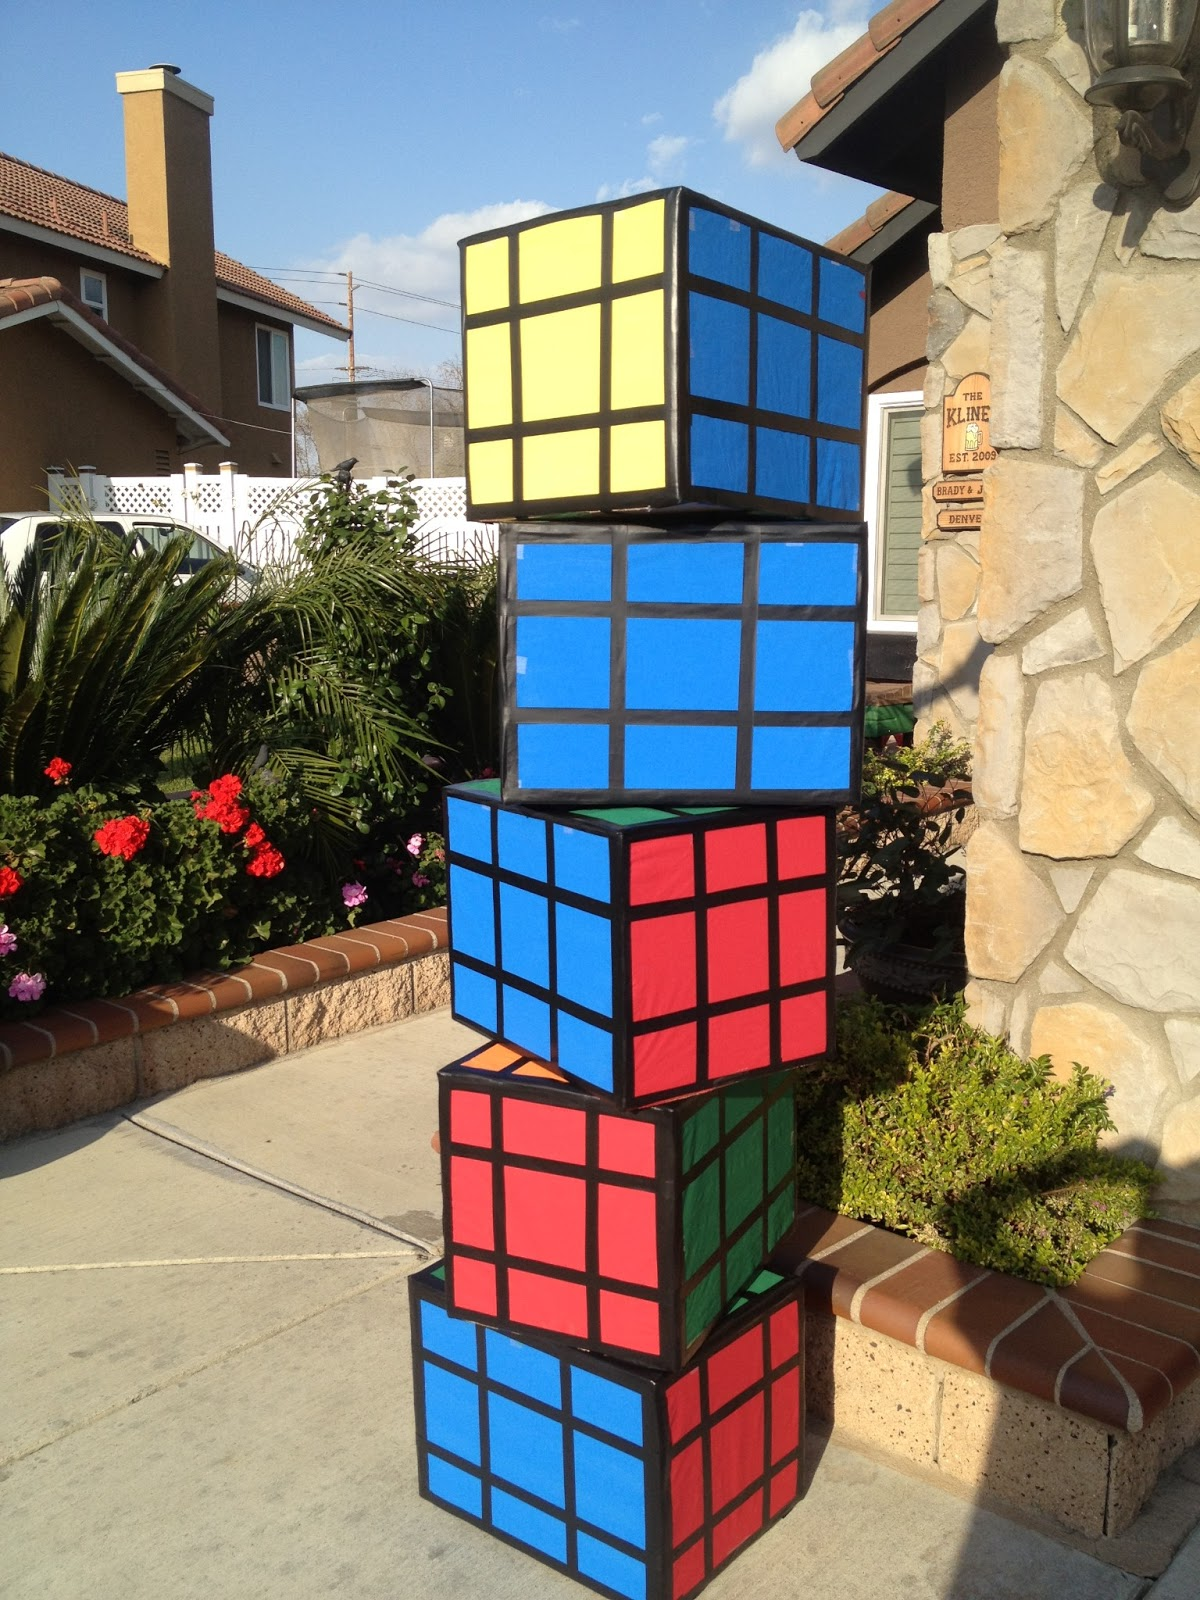 Best Three Crafty Cousins Diy Rubix Cubes 80 S Theme This Month